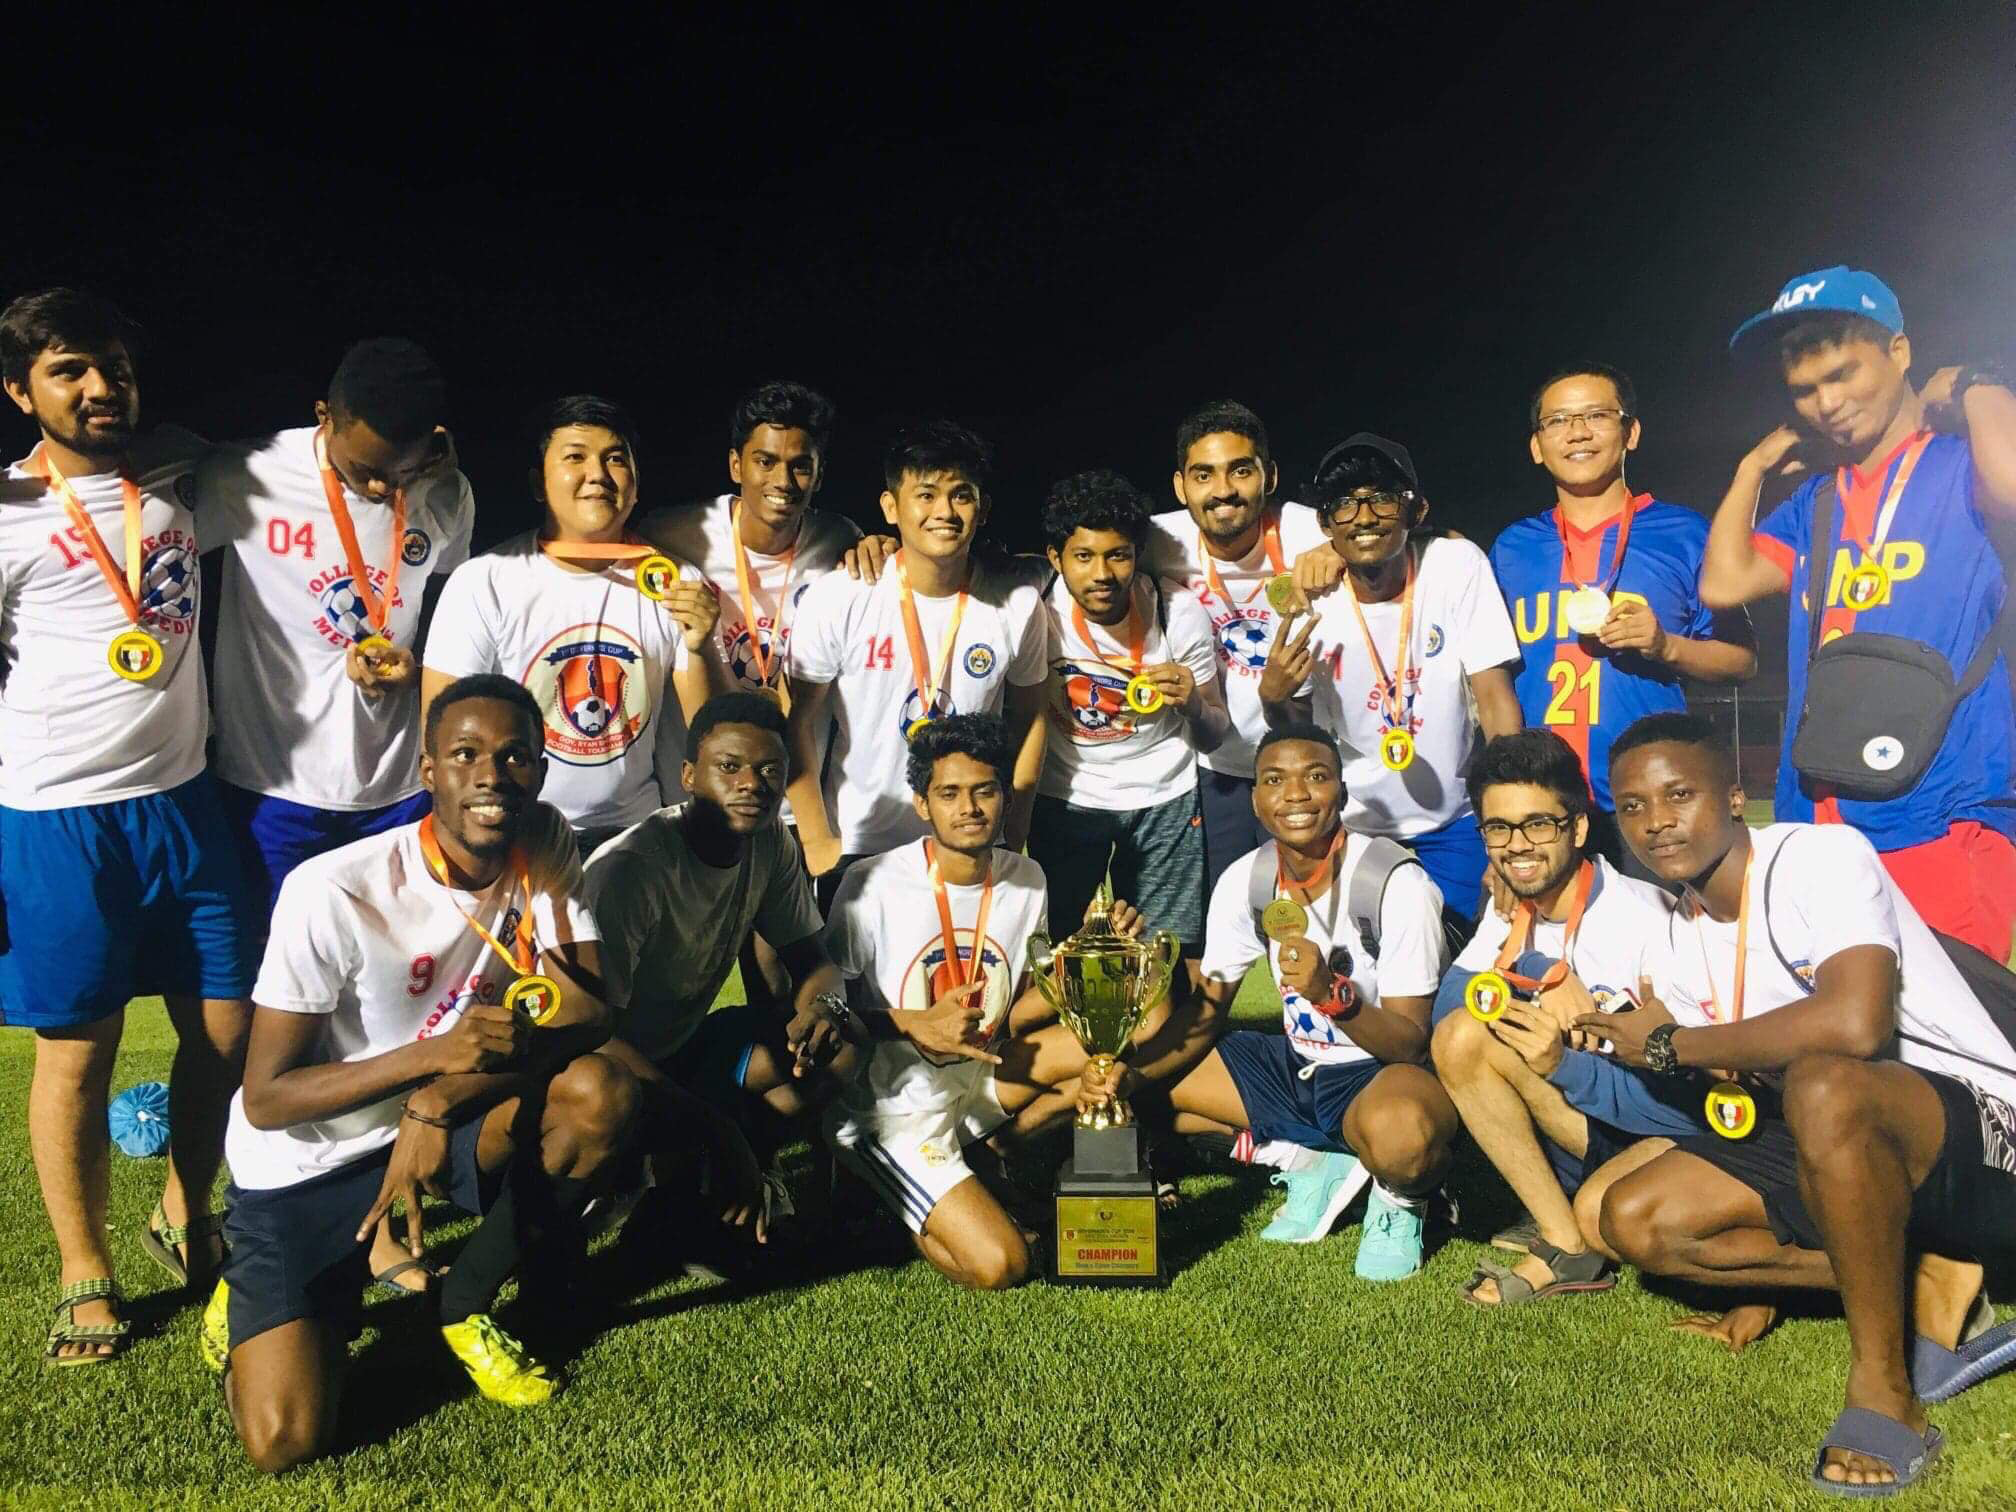 Football team of the University of Northern Philippines College of Medicine